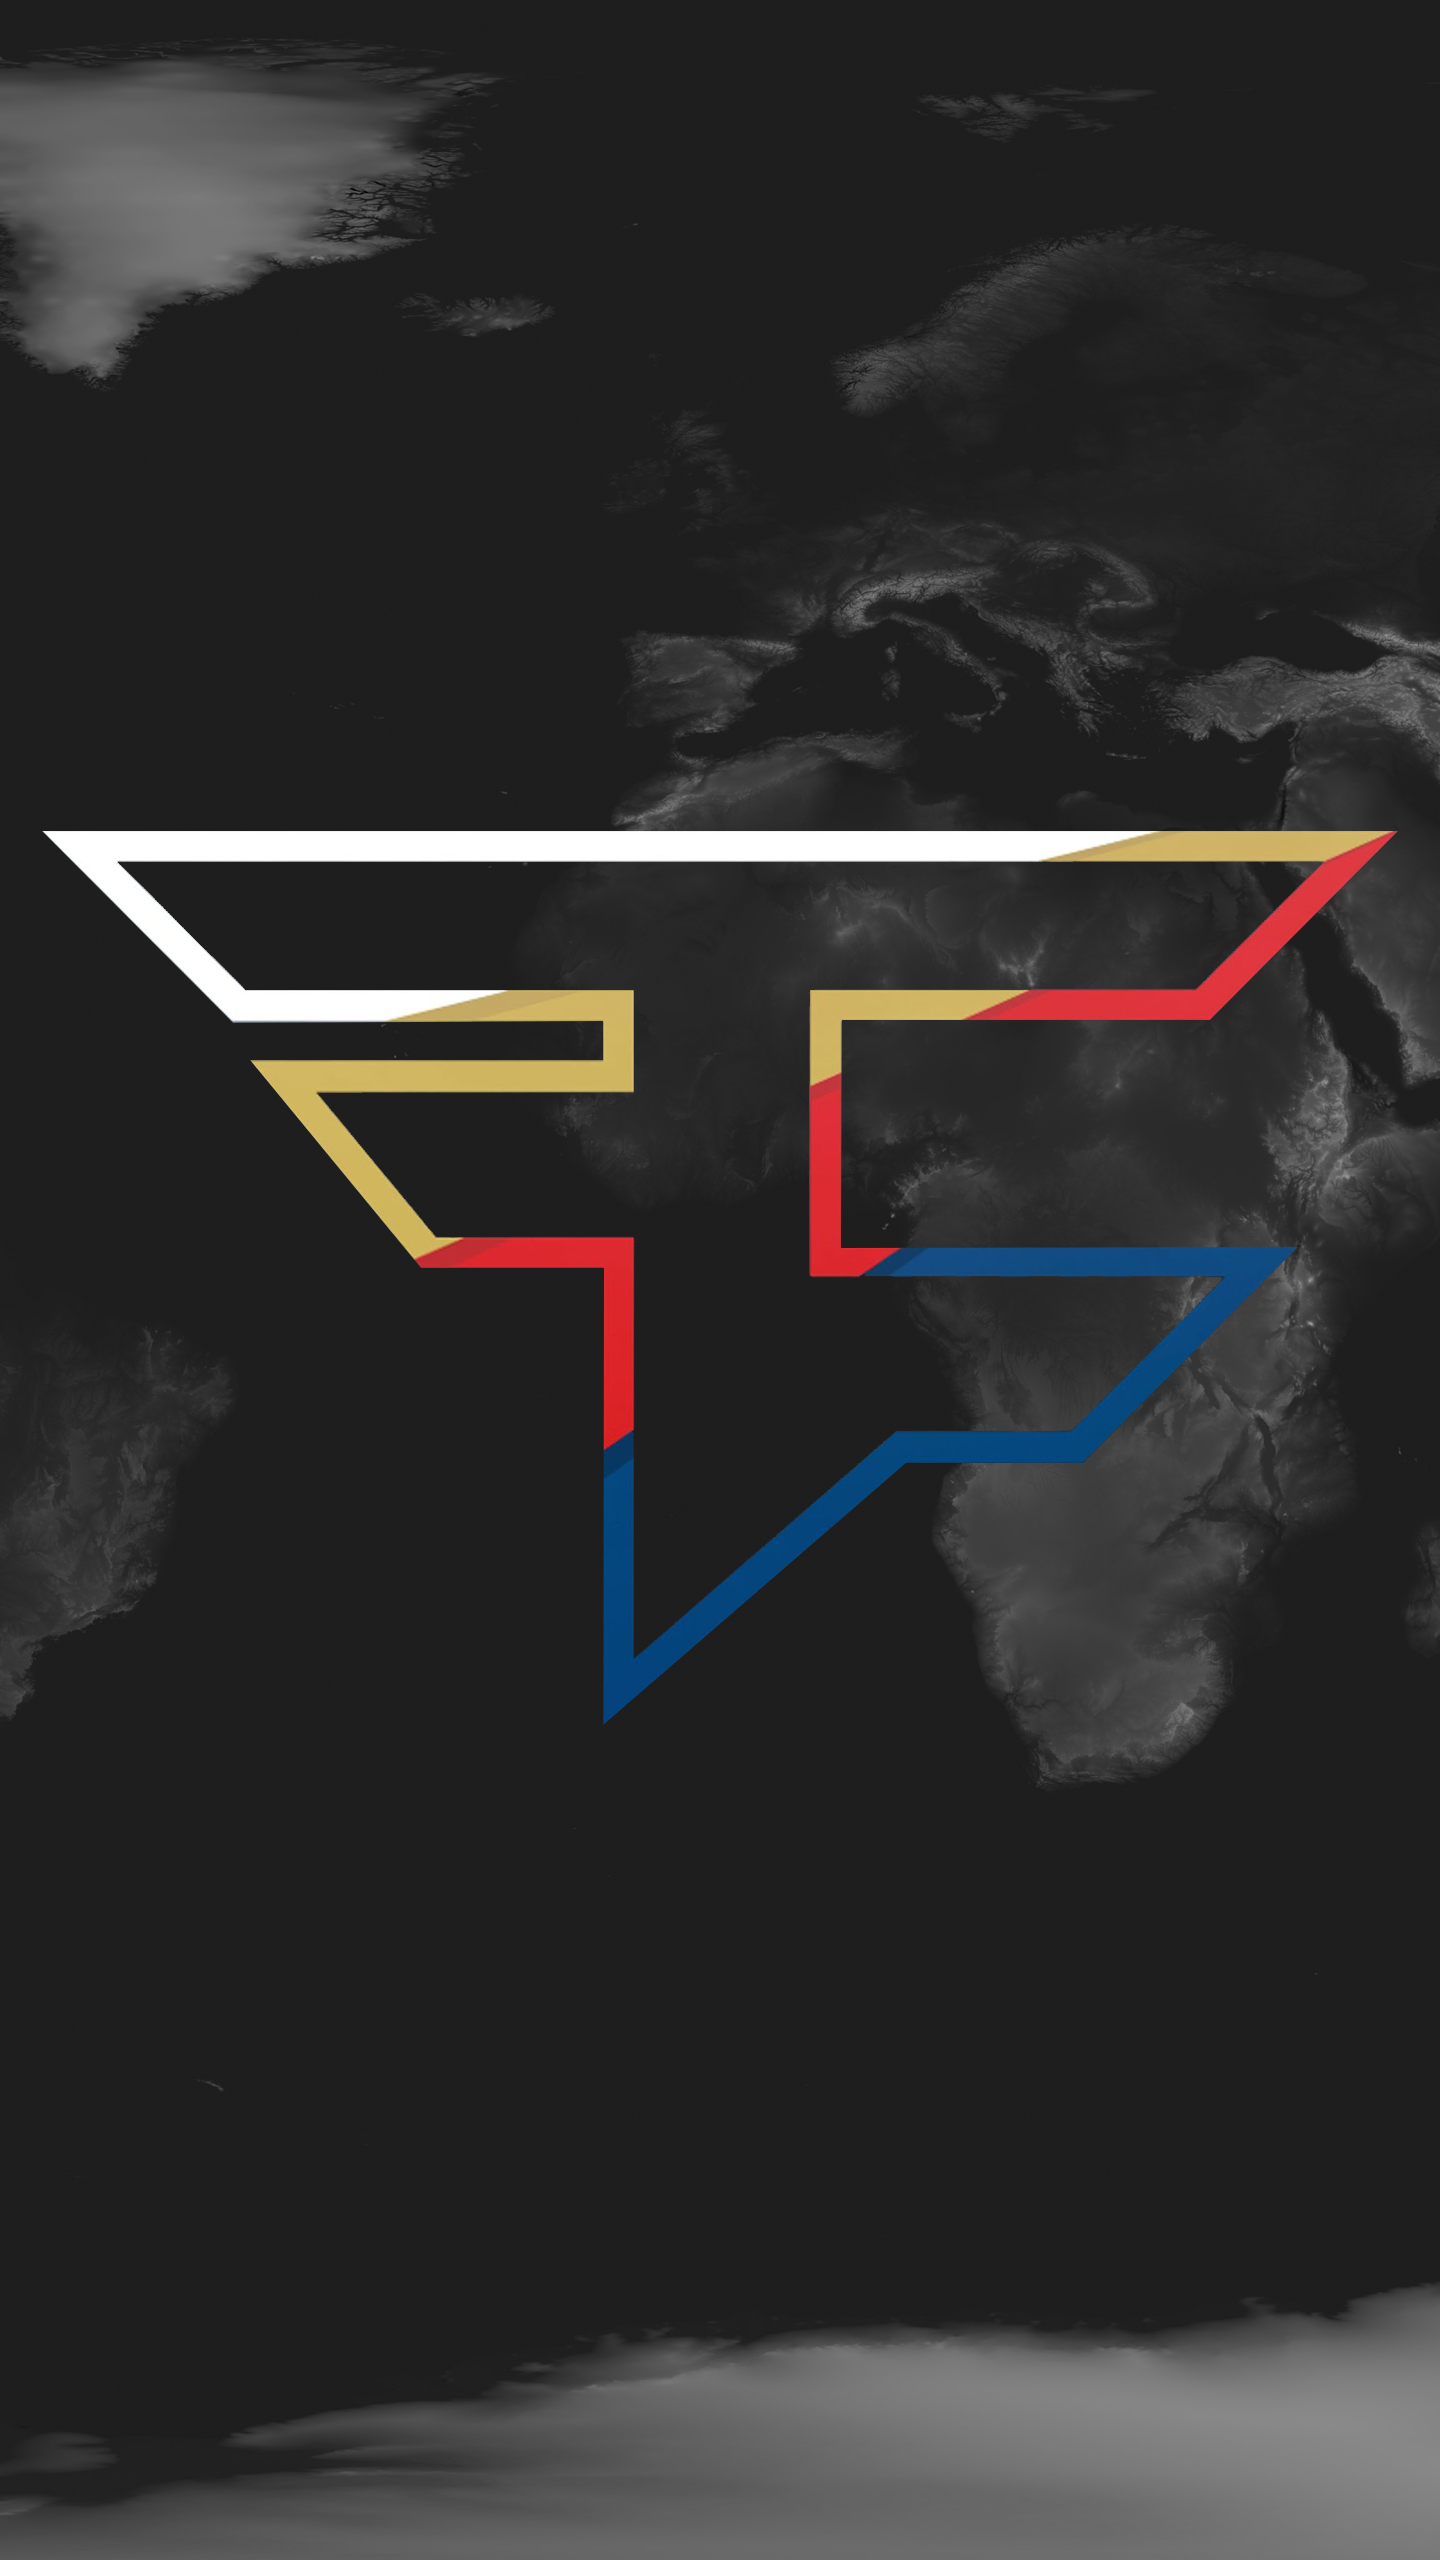 Faze Phone Wallpaper